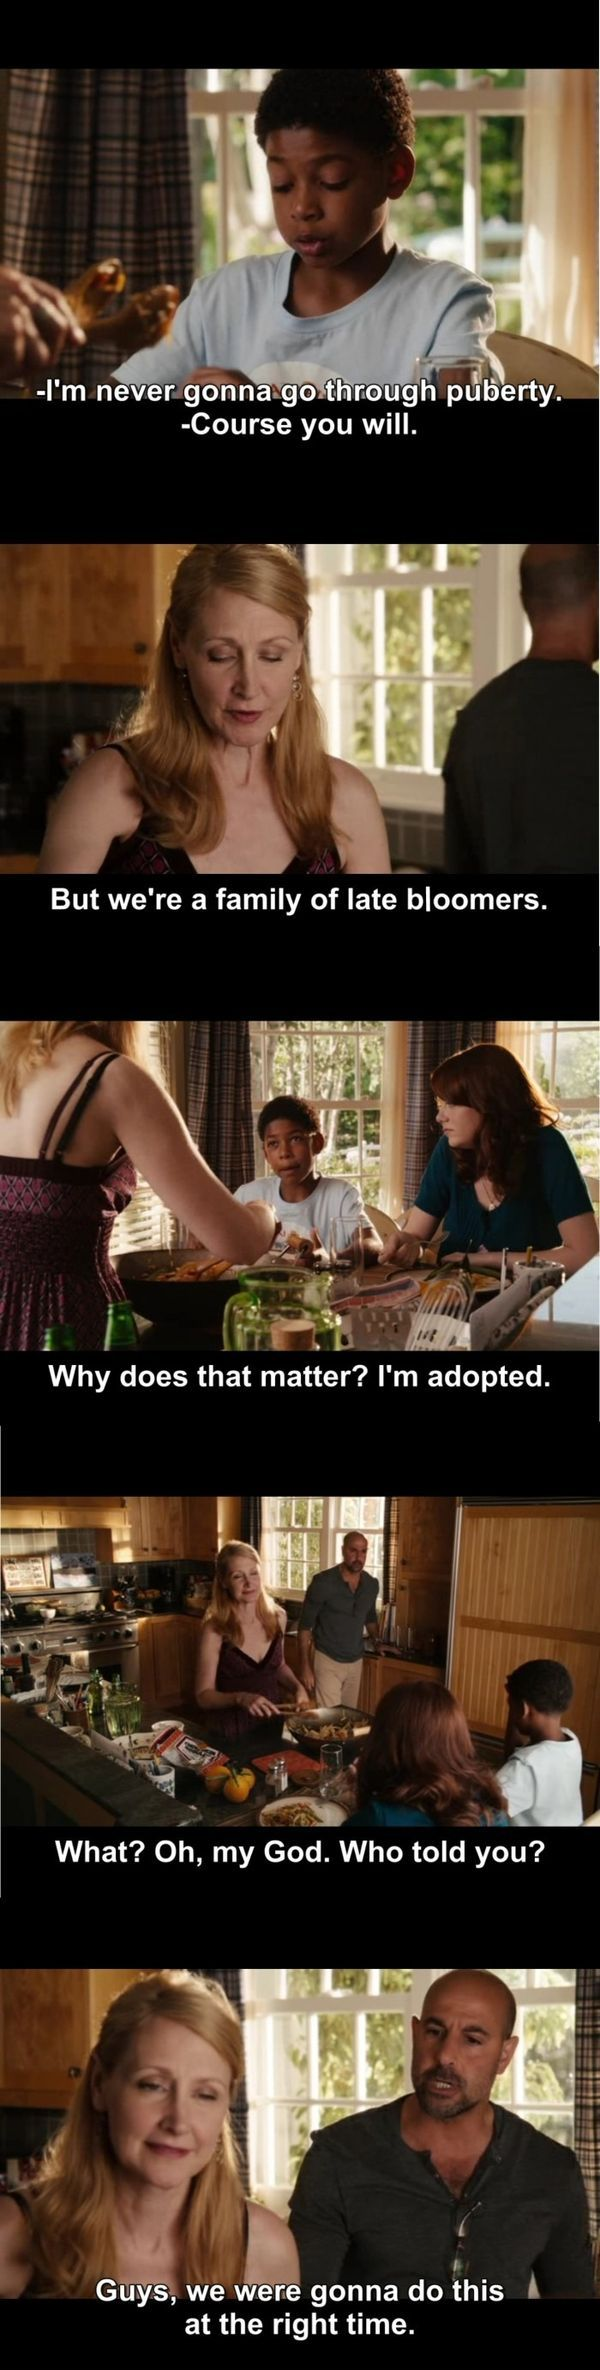 Love Easy A: Good Movies, Movie Parents, Movies Tv, Funny Movies, Favorite Movies, Easy A Favorite, Easya, Favorite Scenes